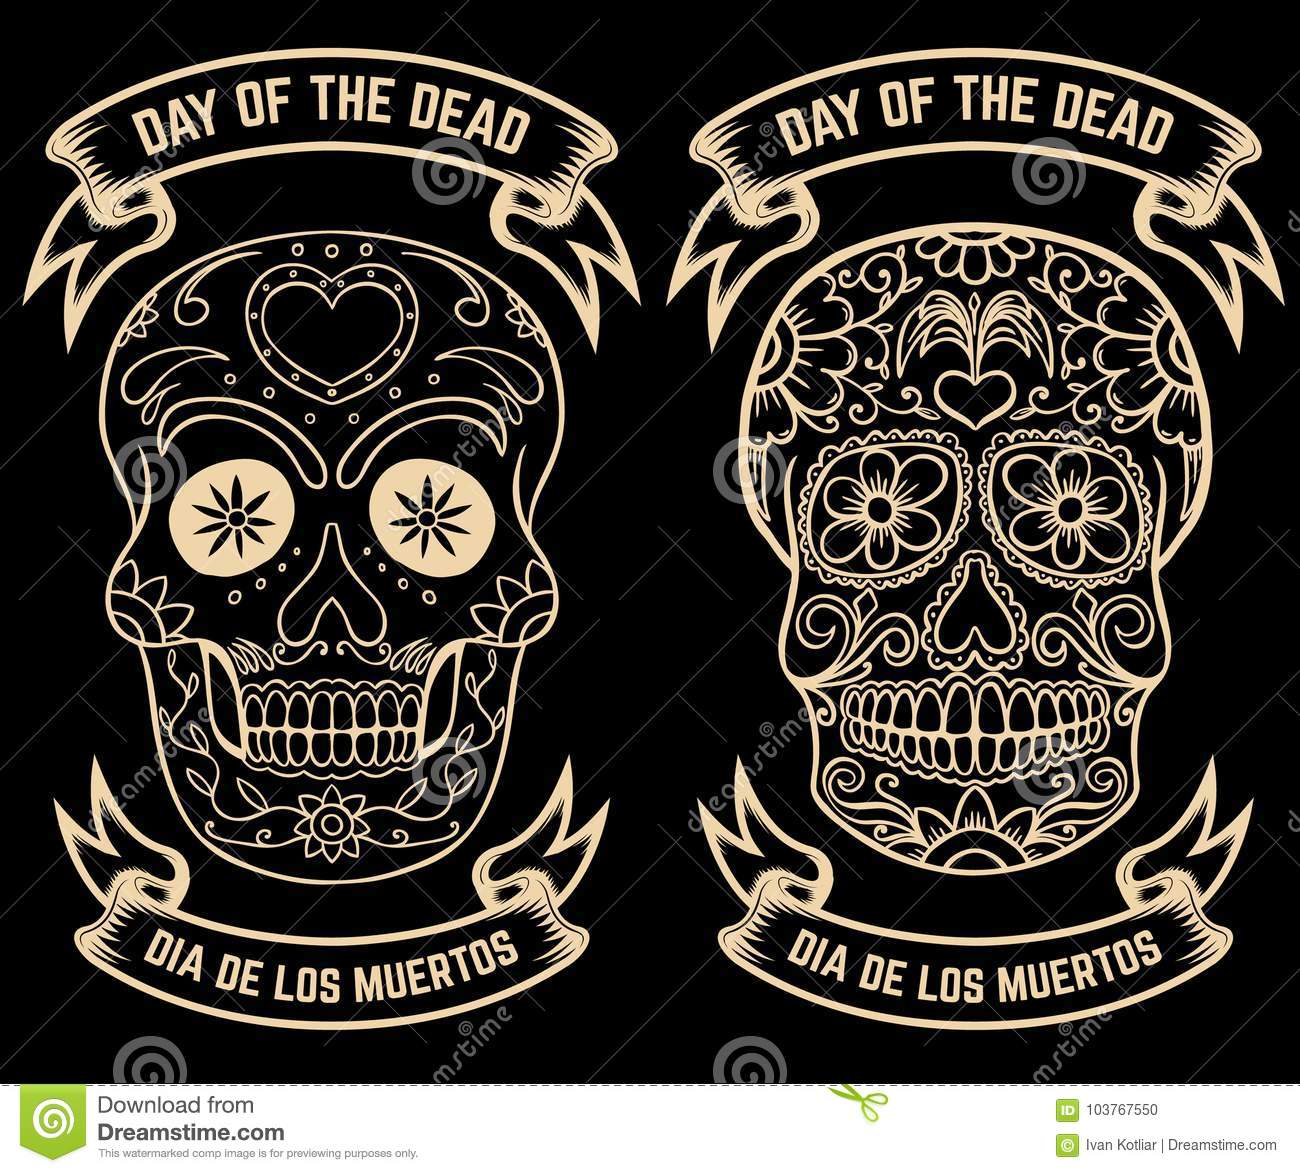 Day of the dead dia de los muertos set of the sugar skulls design day of the dead dia de los muertos set of the sugar skulls design elements for poster greeting card banner vector illustrati m4hsunfo